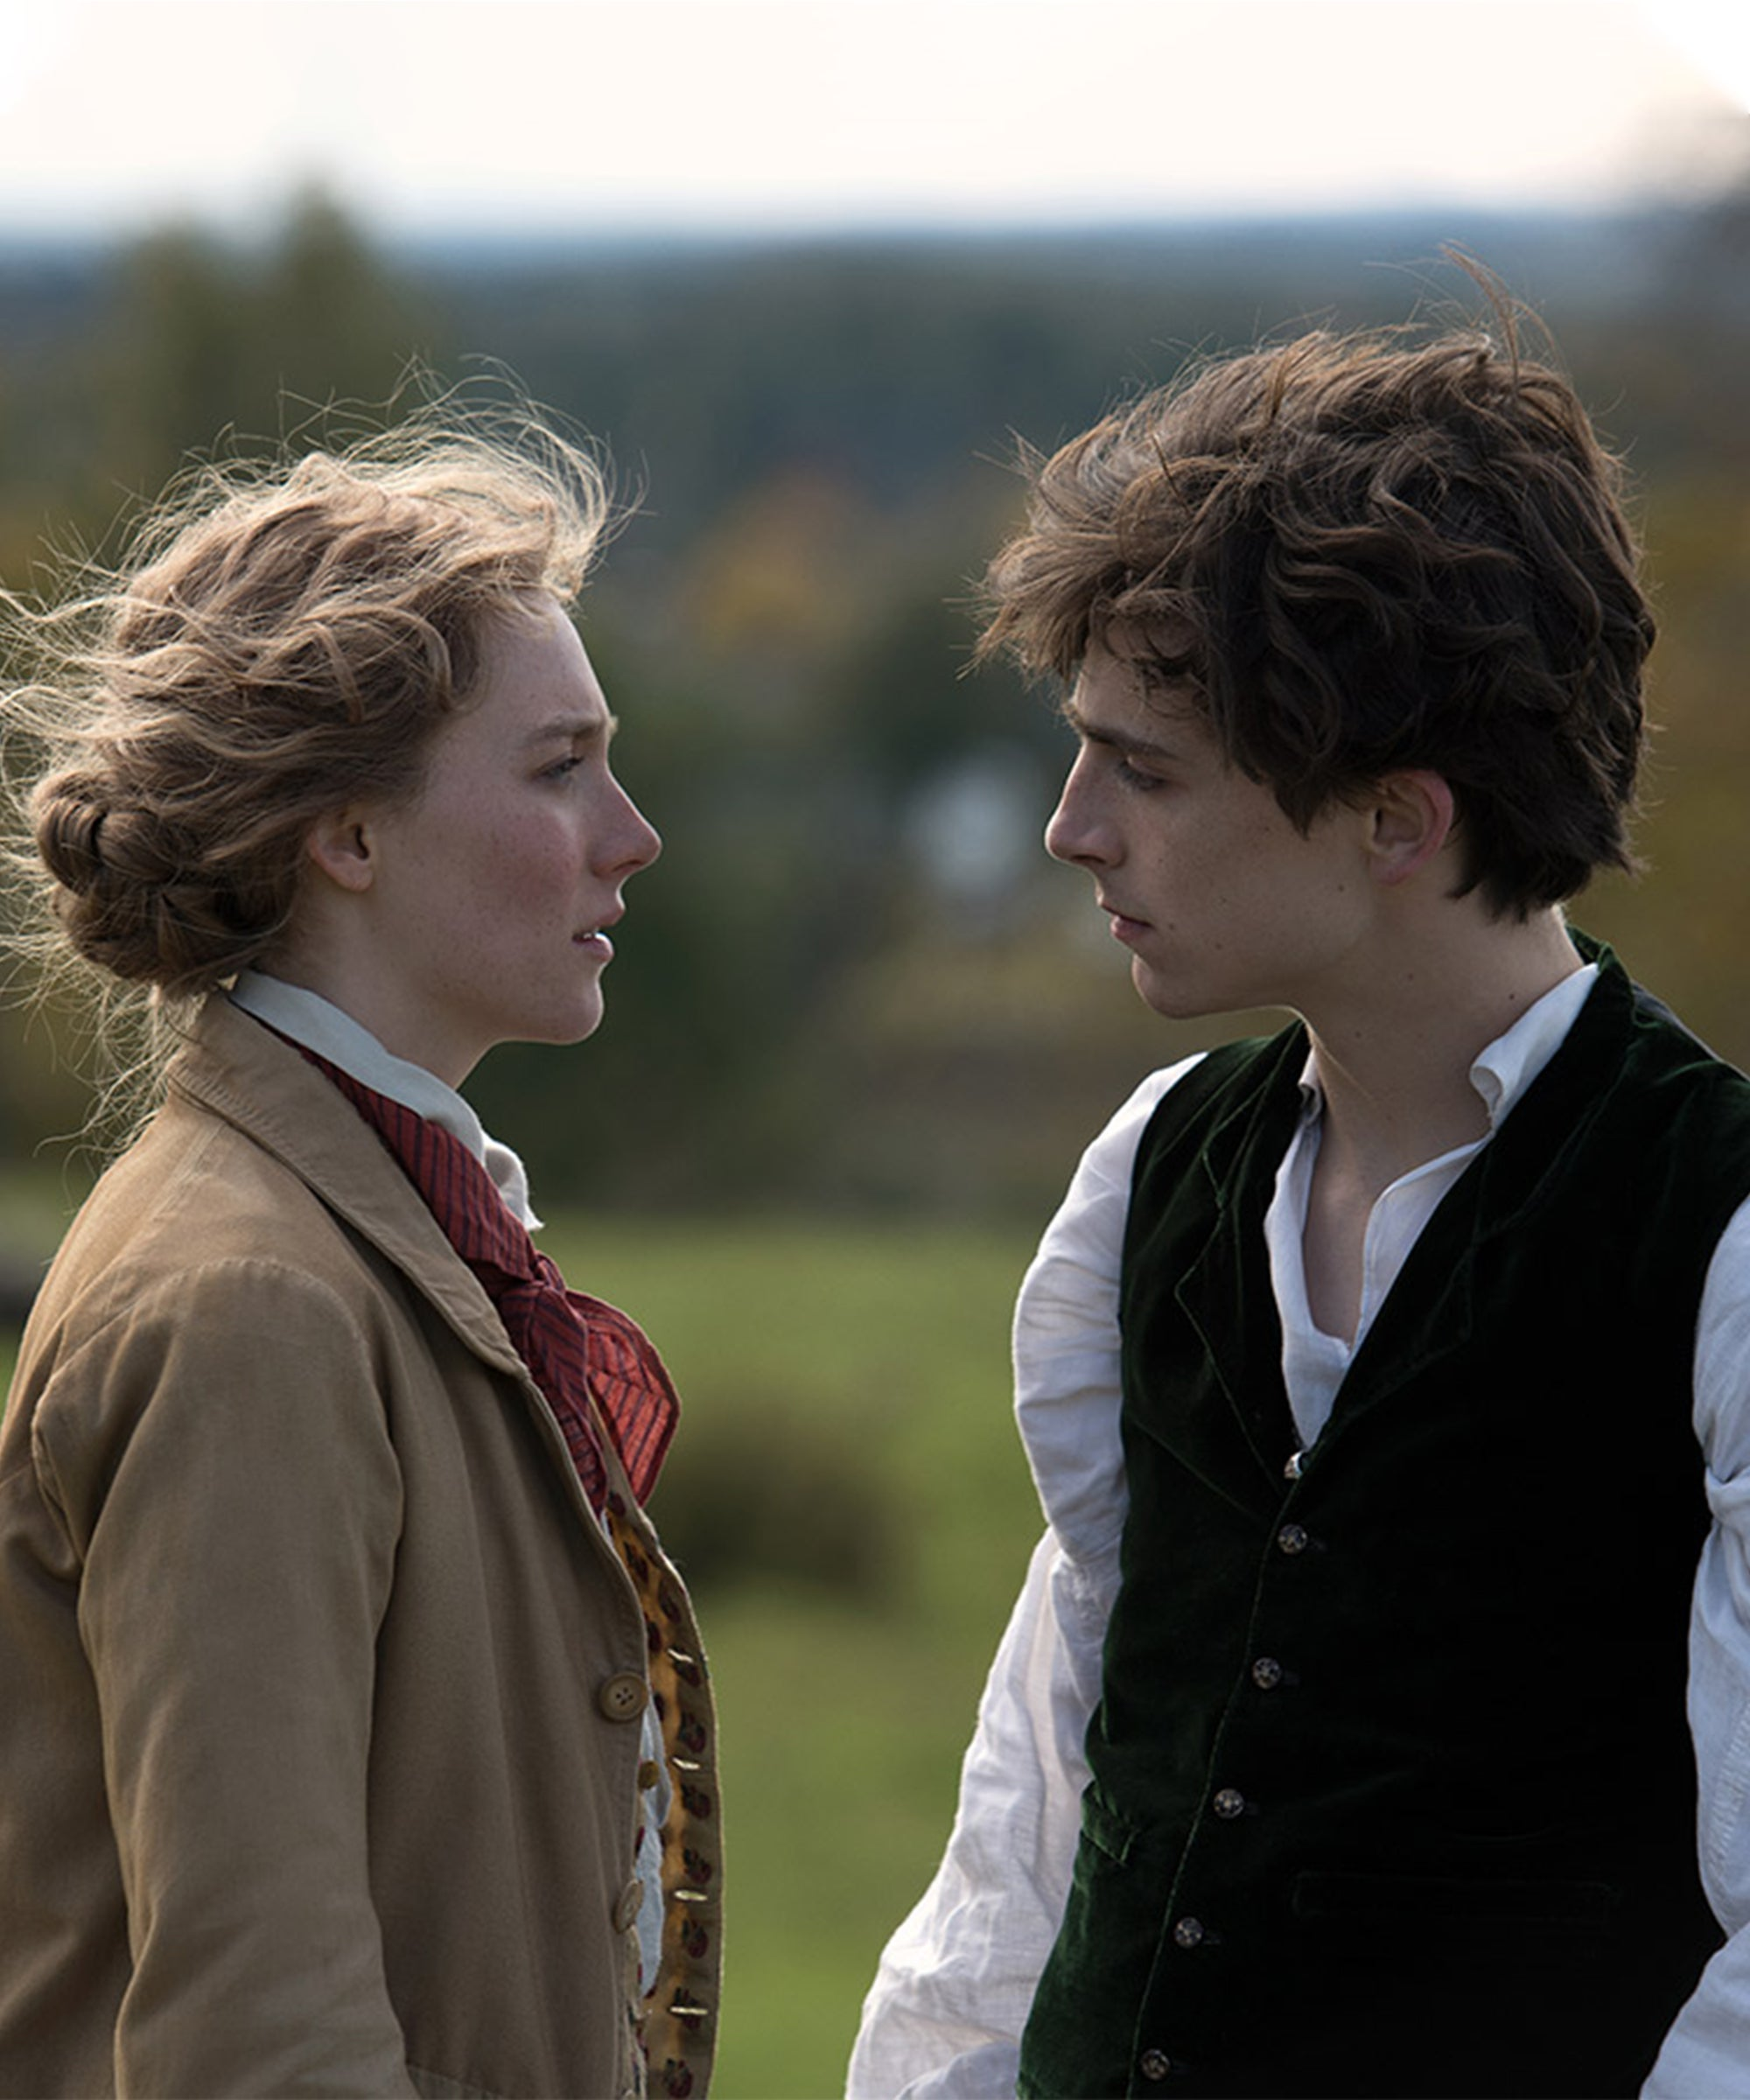 The Hair And Makeup In Little Women Movie Tells A Story